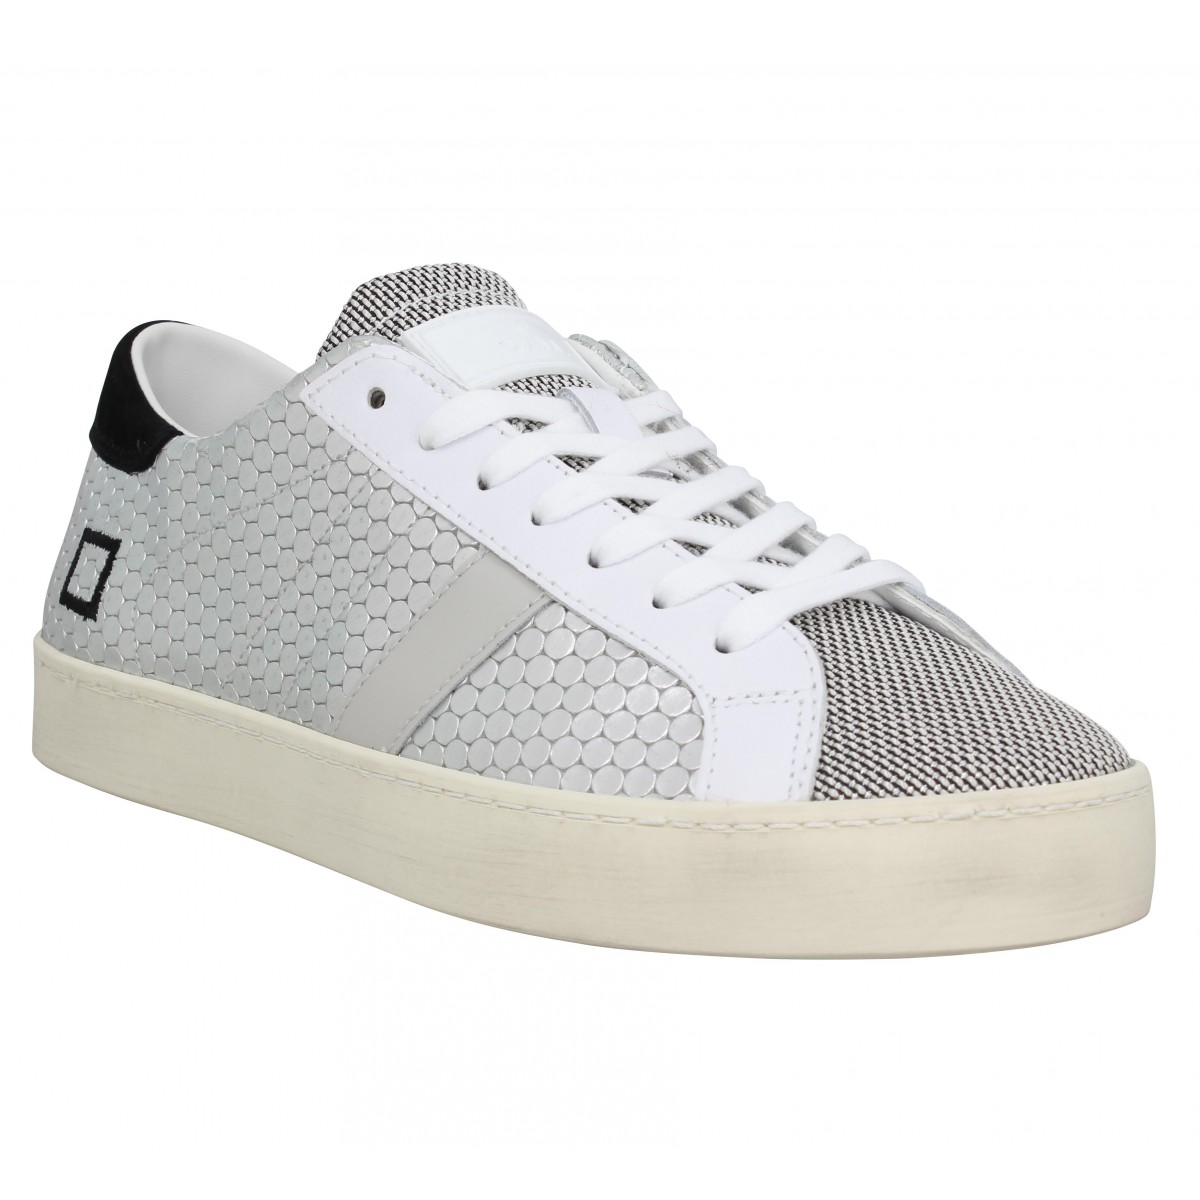 Baskets DATE SNEAKERS Hill Low pong Femme Argent Noir